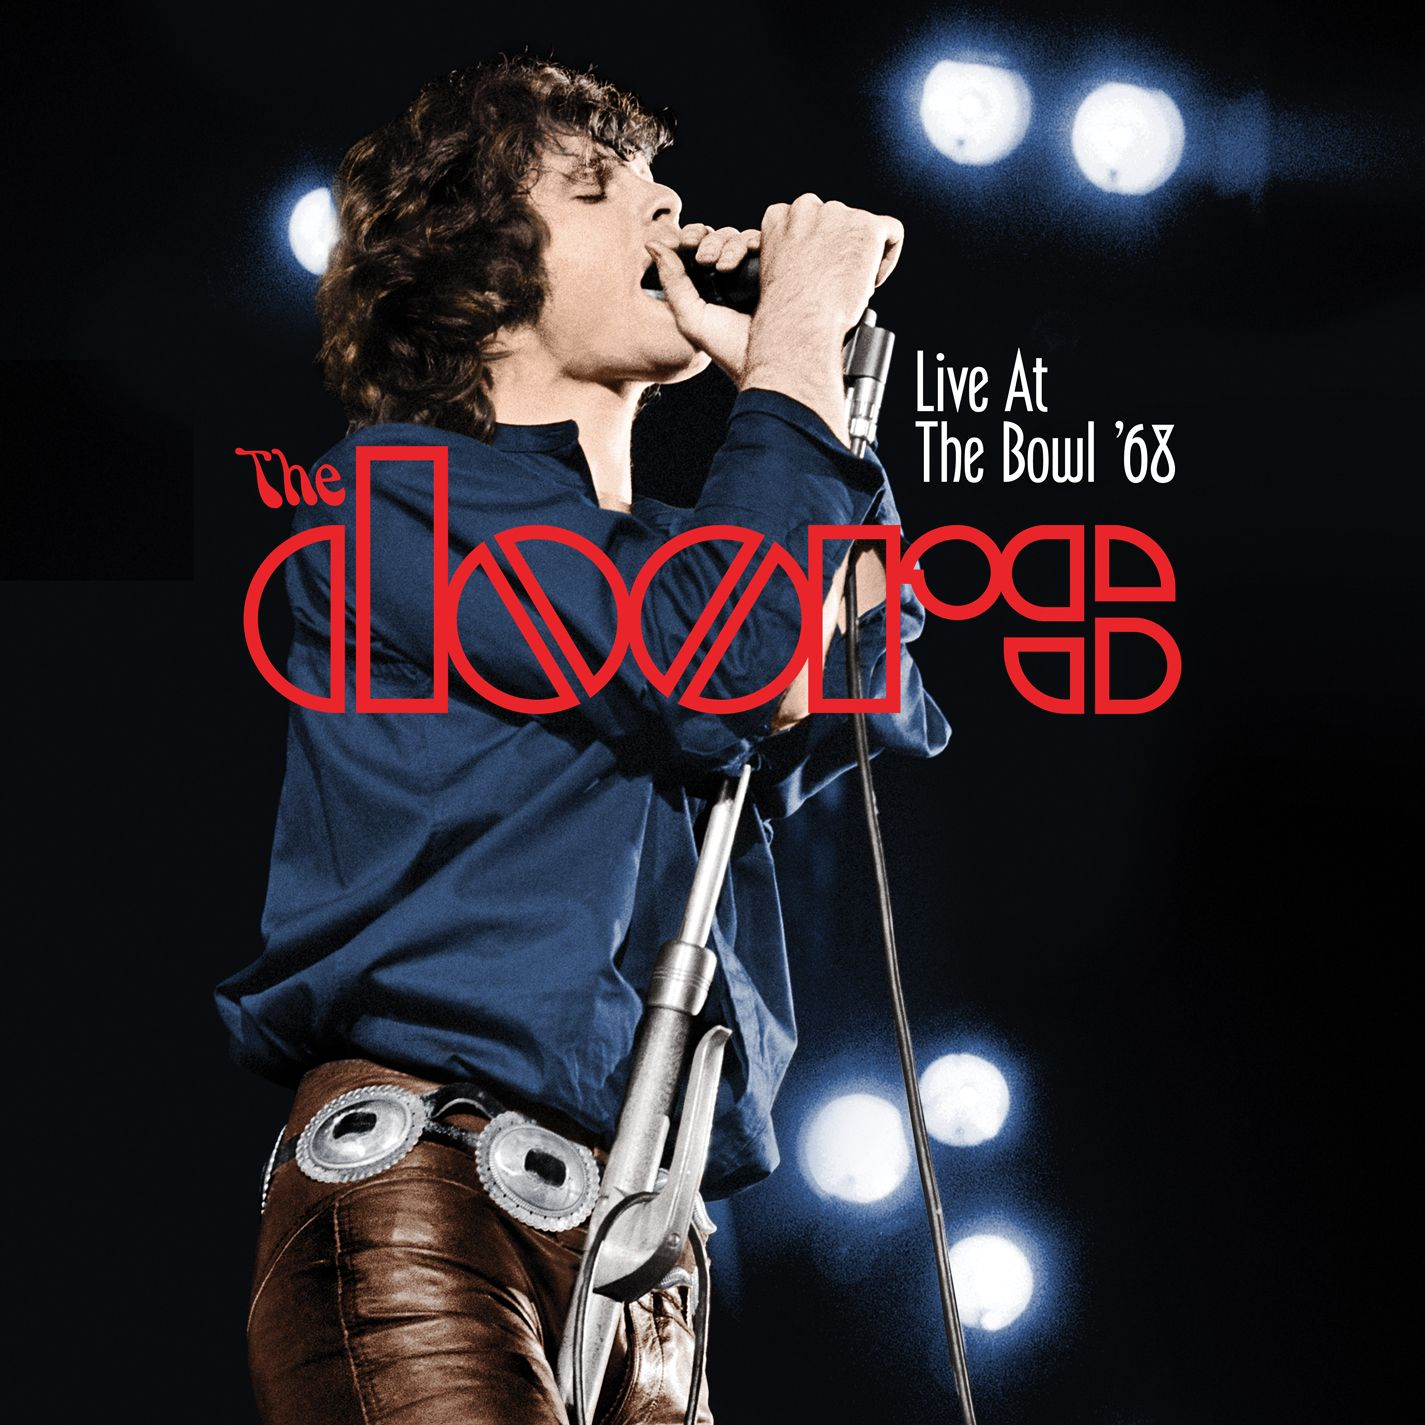 the doors album covers - Google Search  sc 1 st  Pinterest & the doors album covers - Google Search | Album Covers I love ... pezcame.com